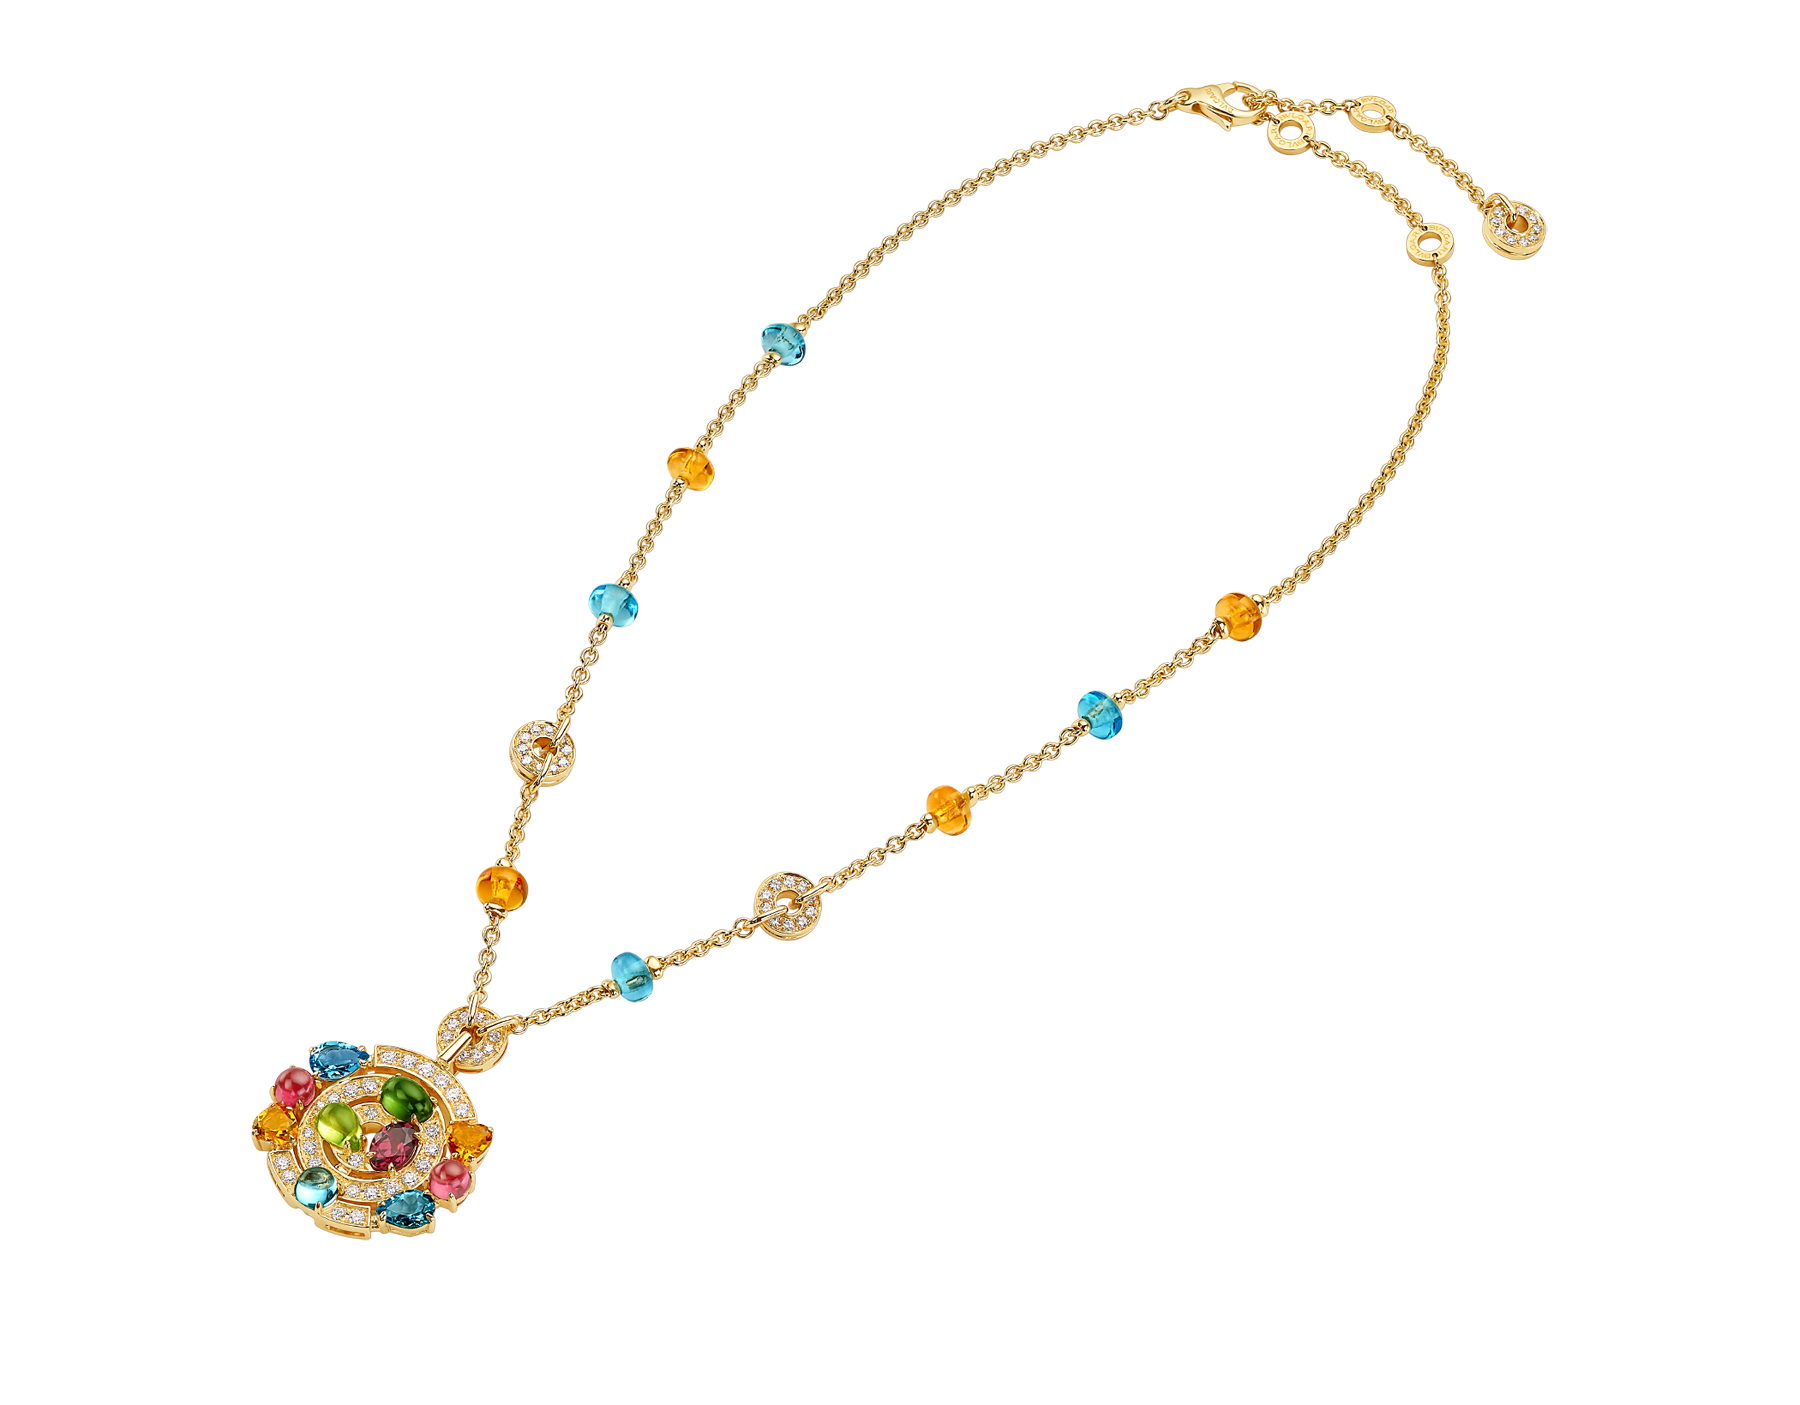 Astrale 18 kt yellow gold large pendant necklace set with blue topazes, amethysts, green tourmalines, peridots, citrine quartz, rhodolite garnets and pavé diamonds 338229 image 2